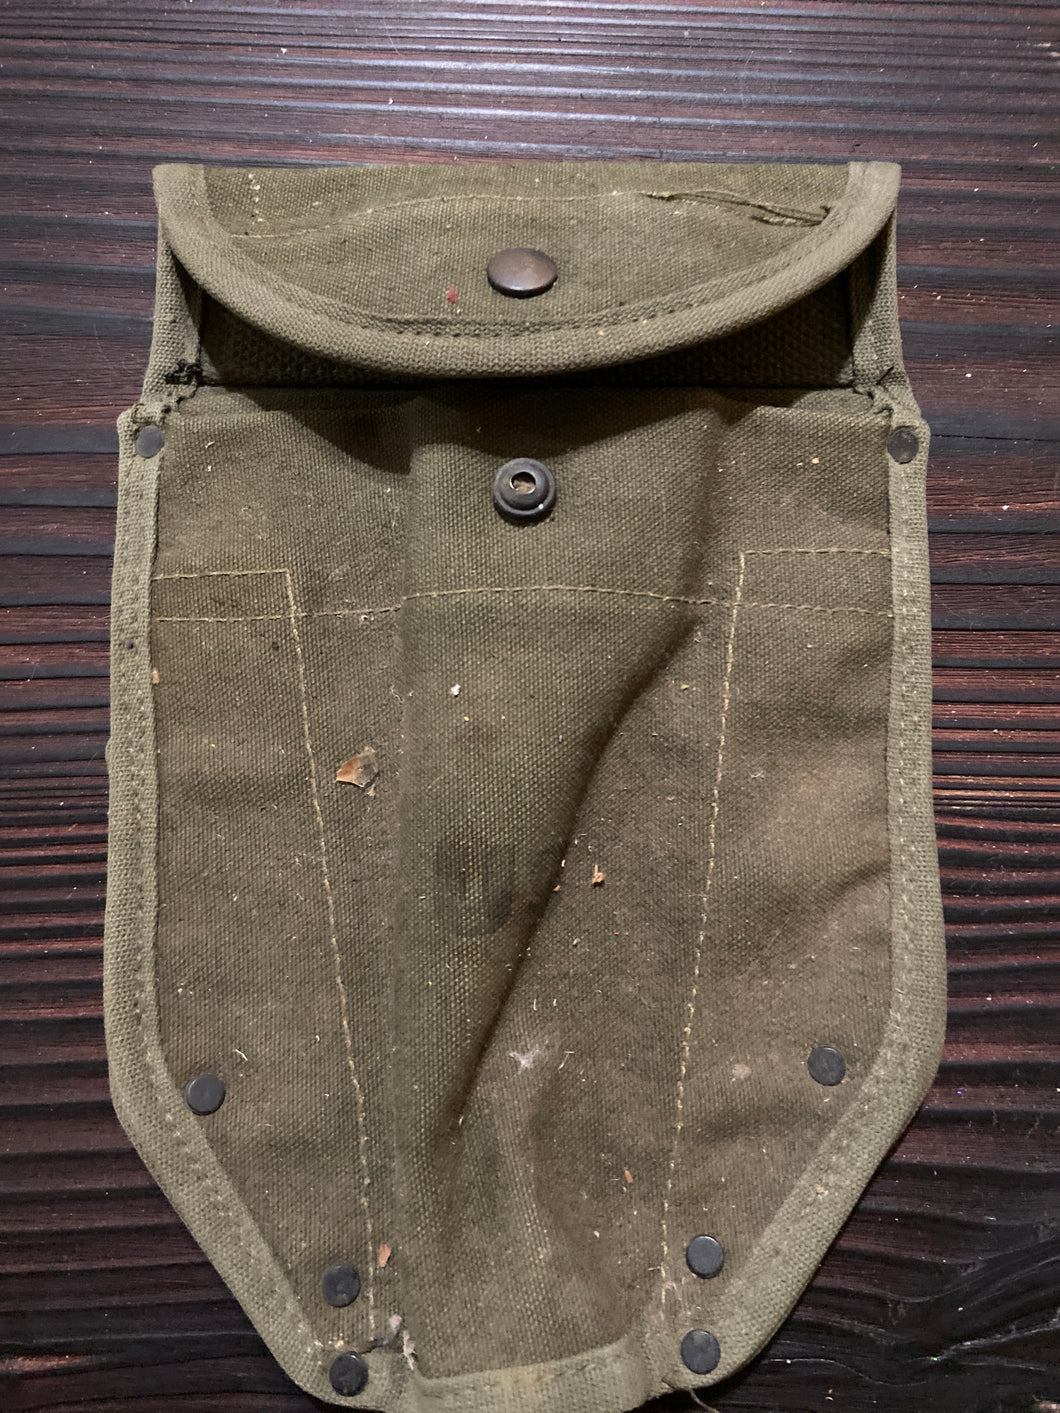 Vintage Army Tool Pouch - US Military